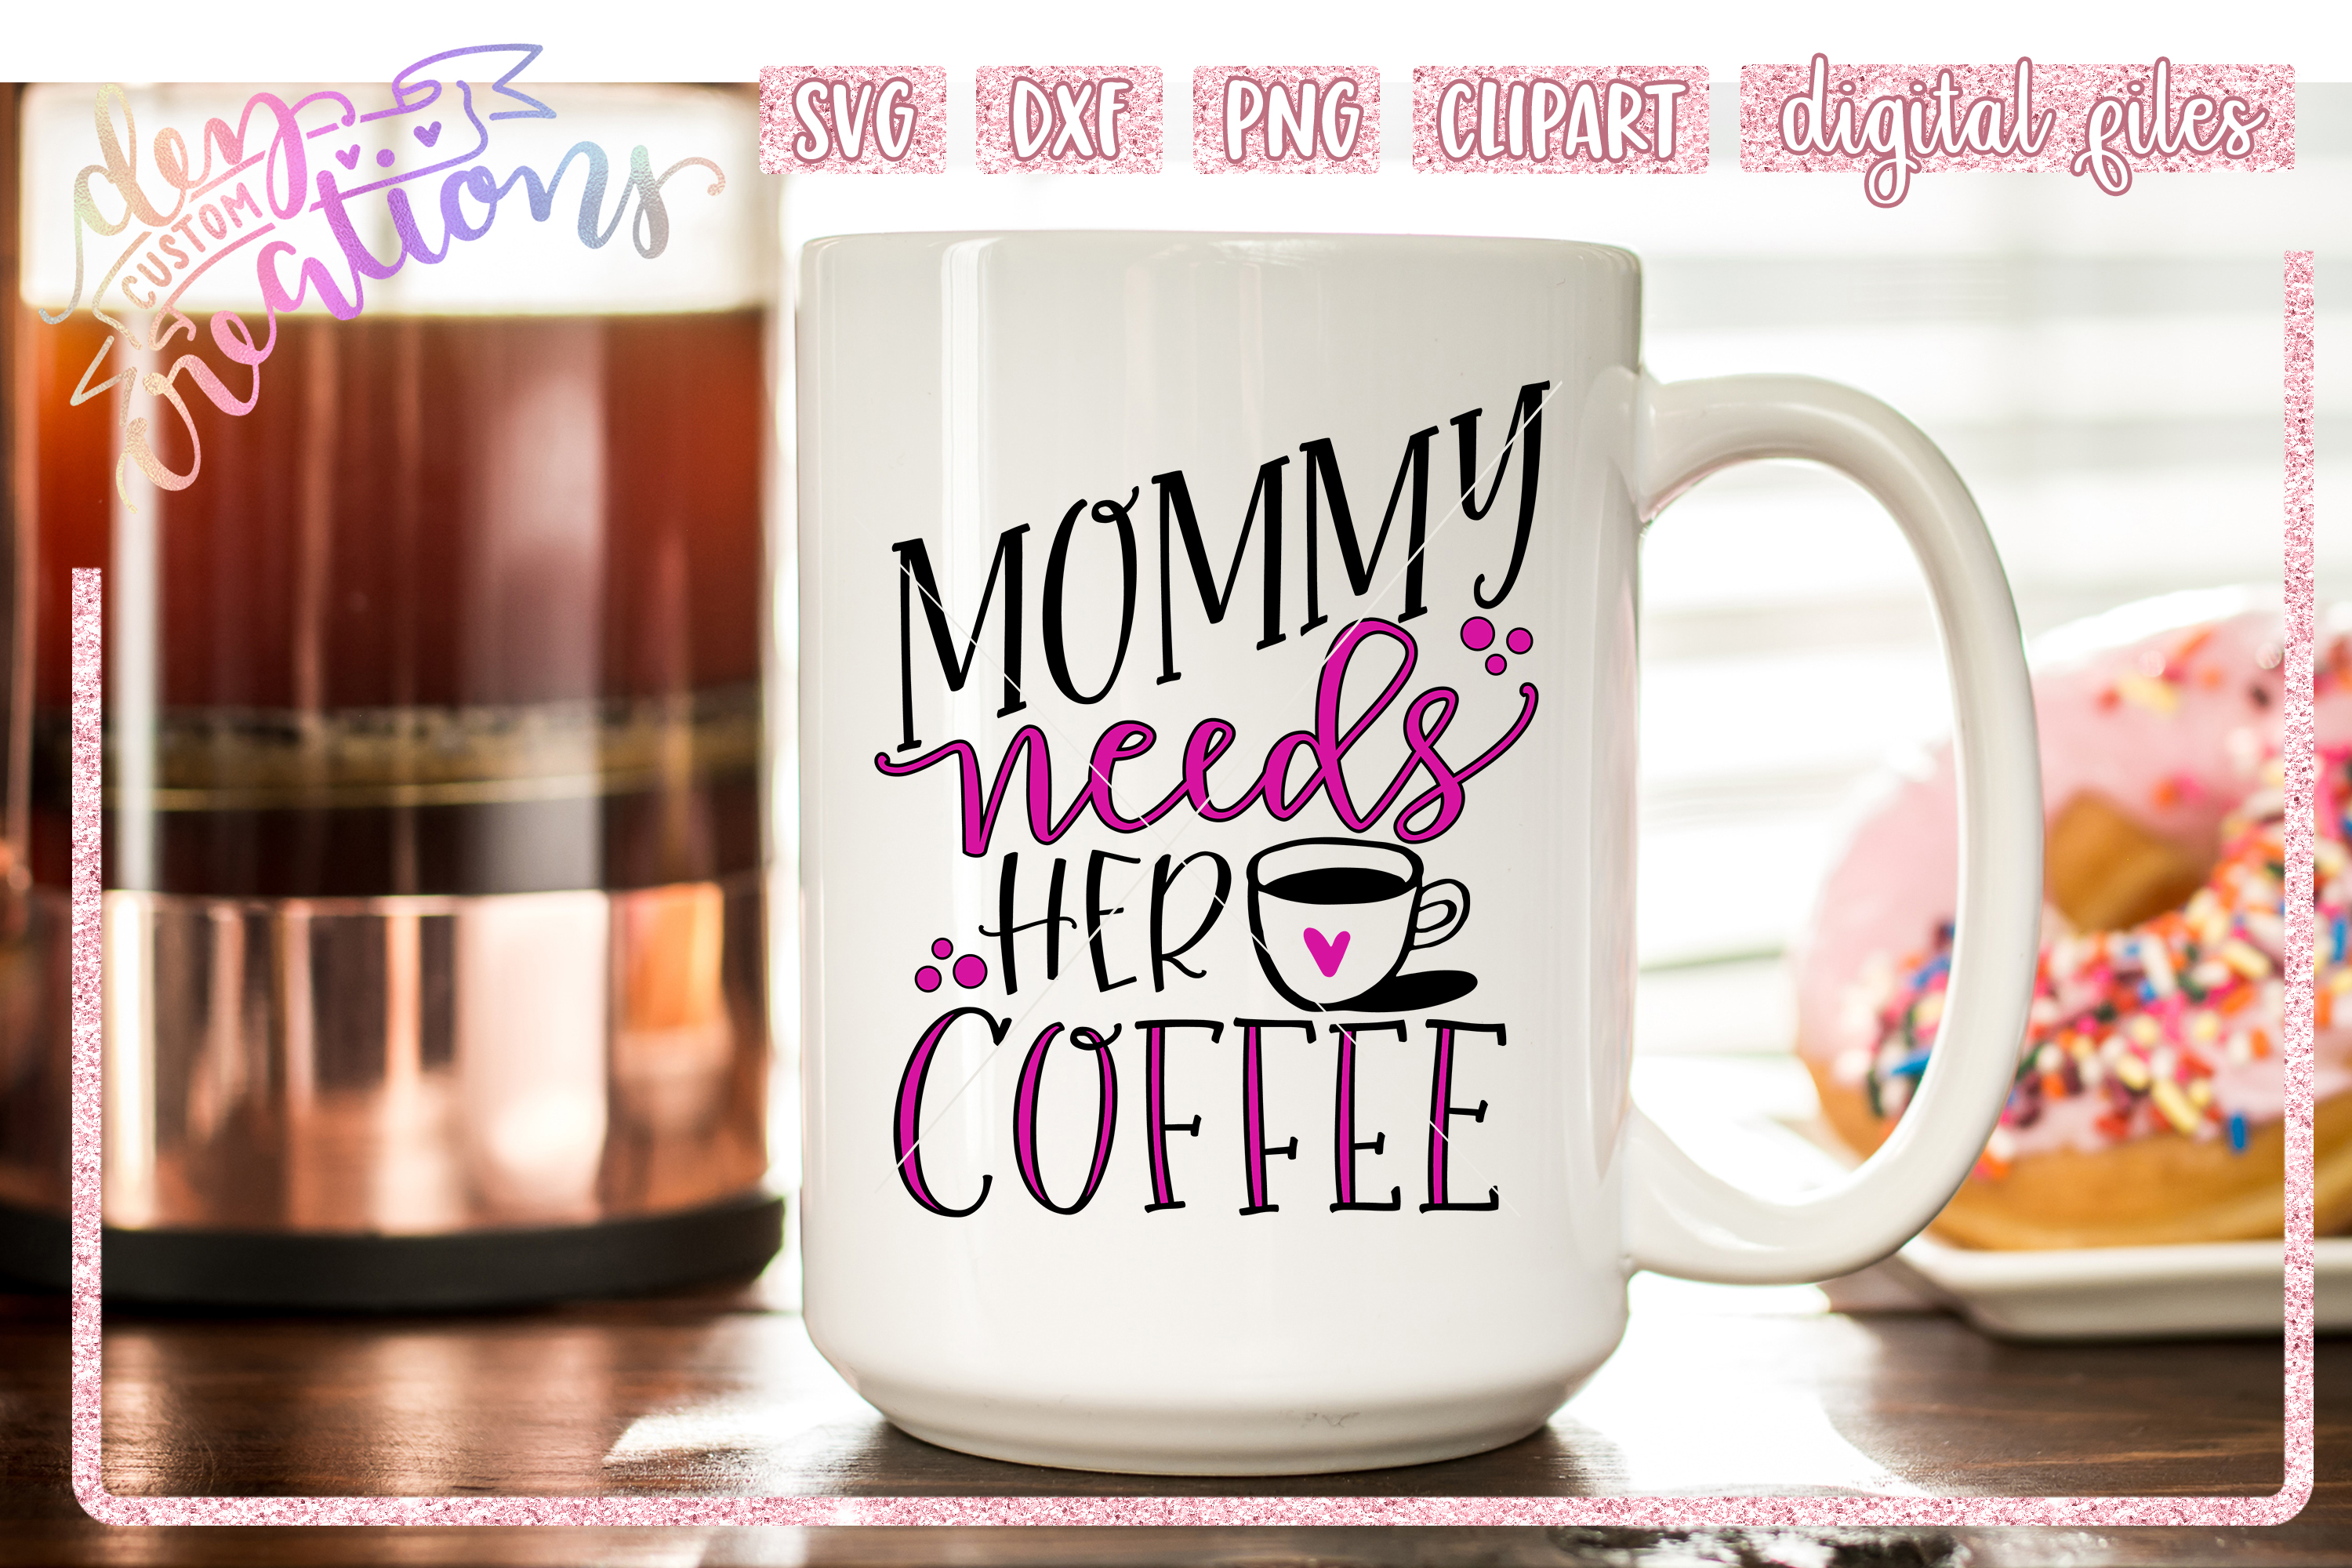 Mommy Needs Her Coffee - SVG DXF PNG File example image 2